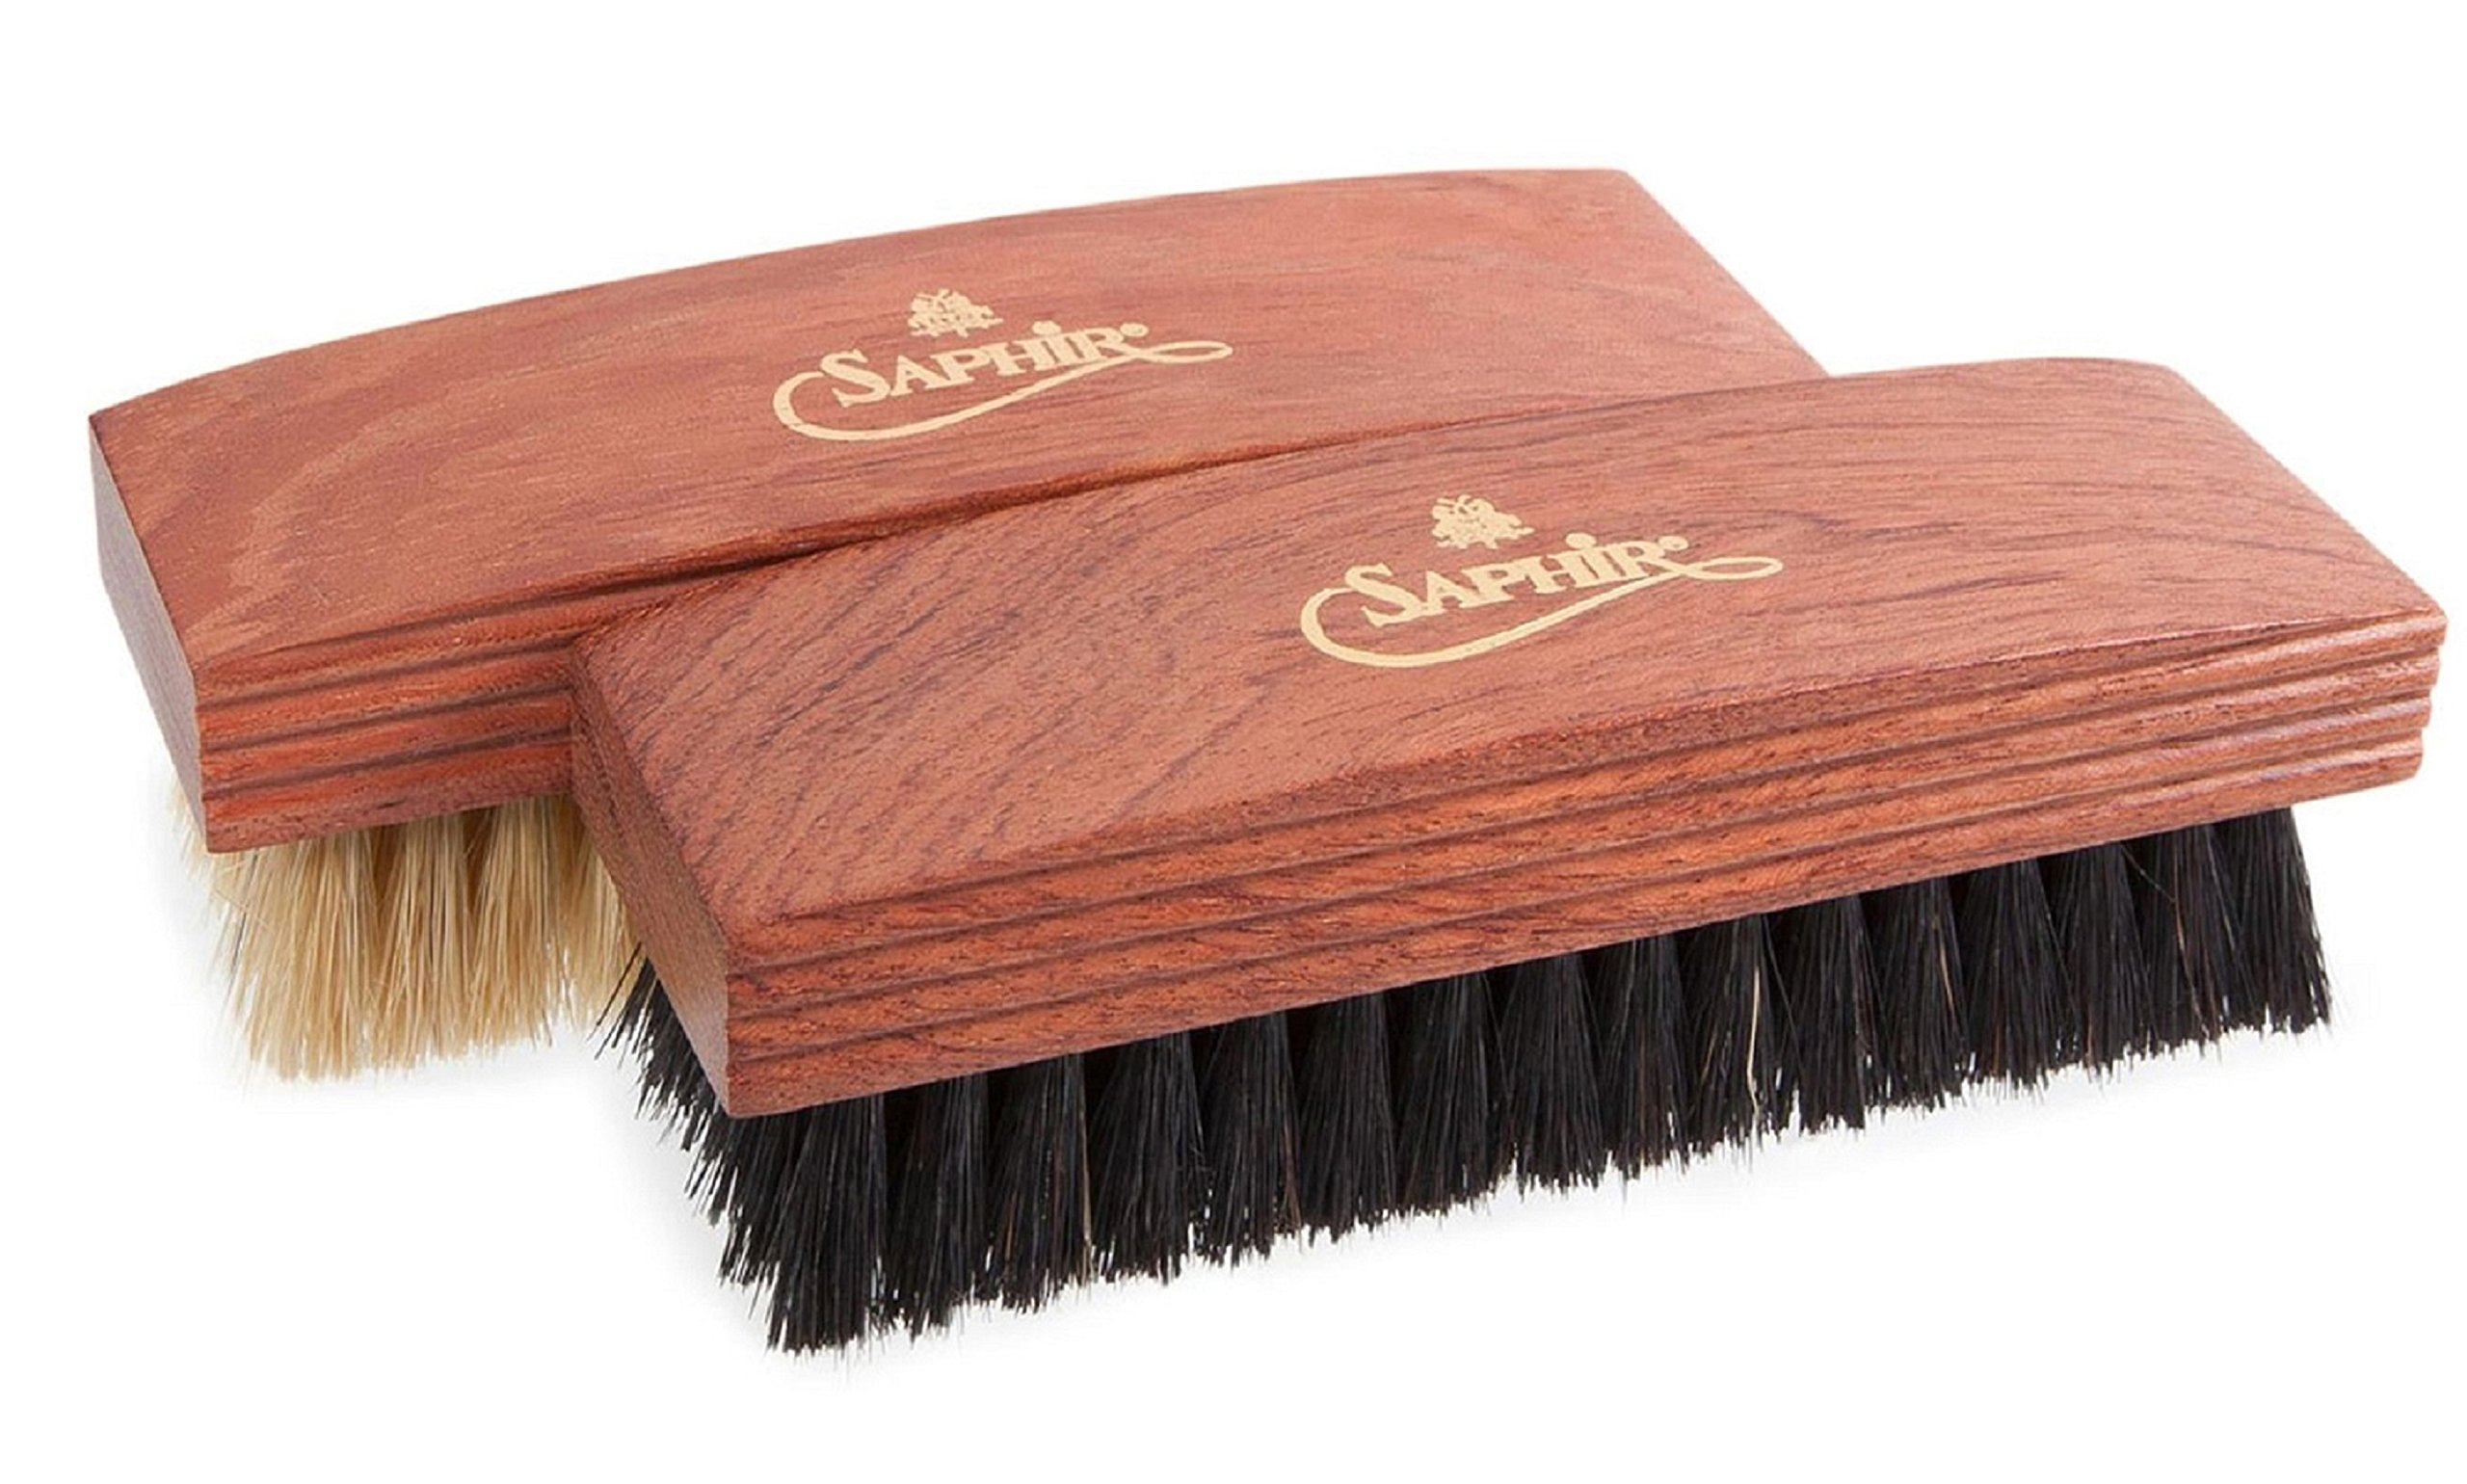 Saphir Men's Mdo Buffing And Polishing Brushes One Size Black & Natural Set